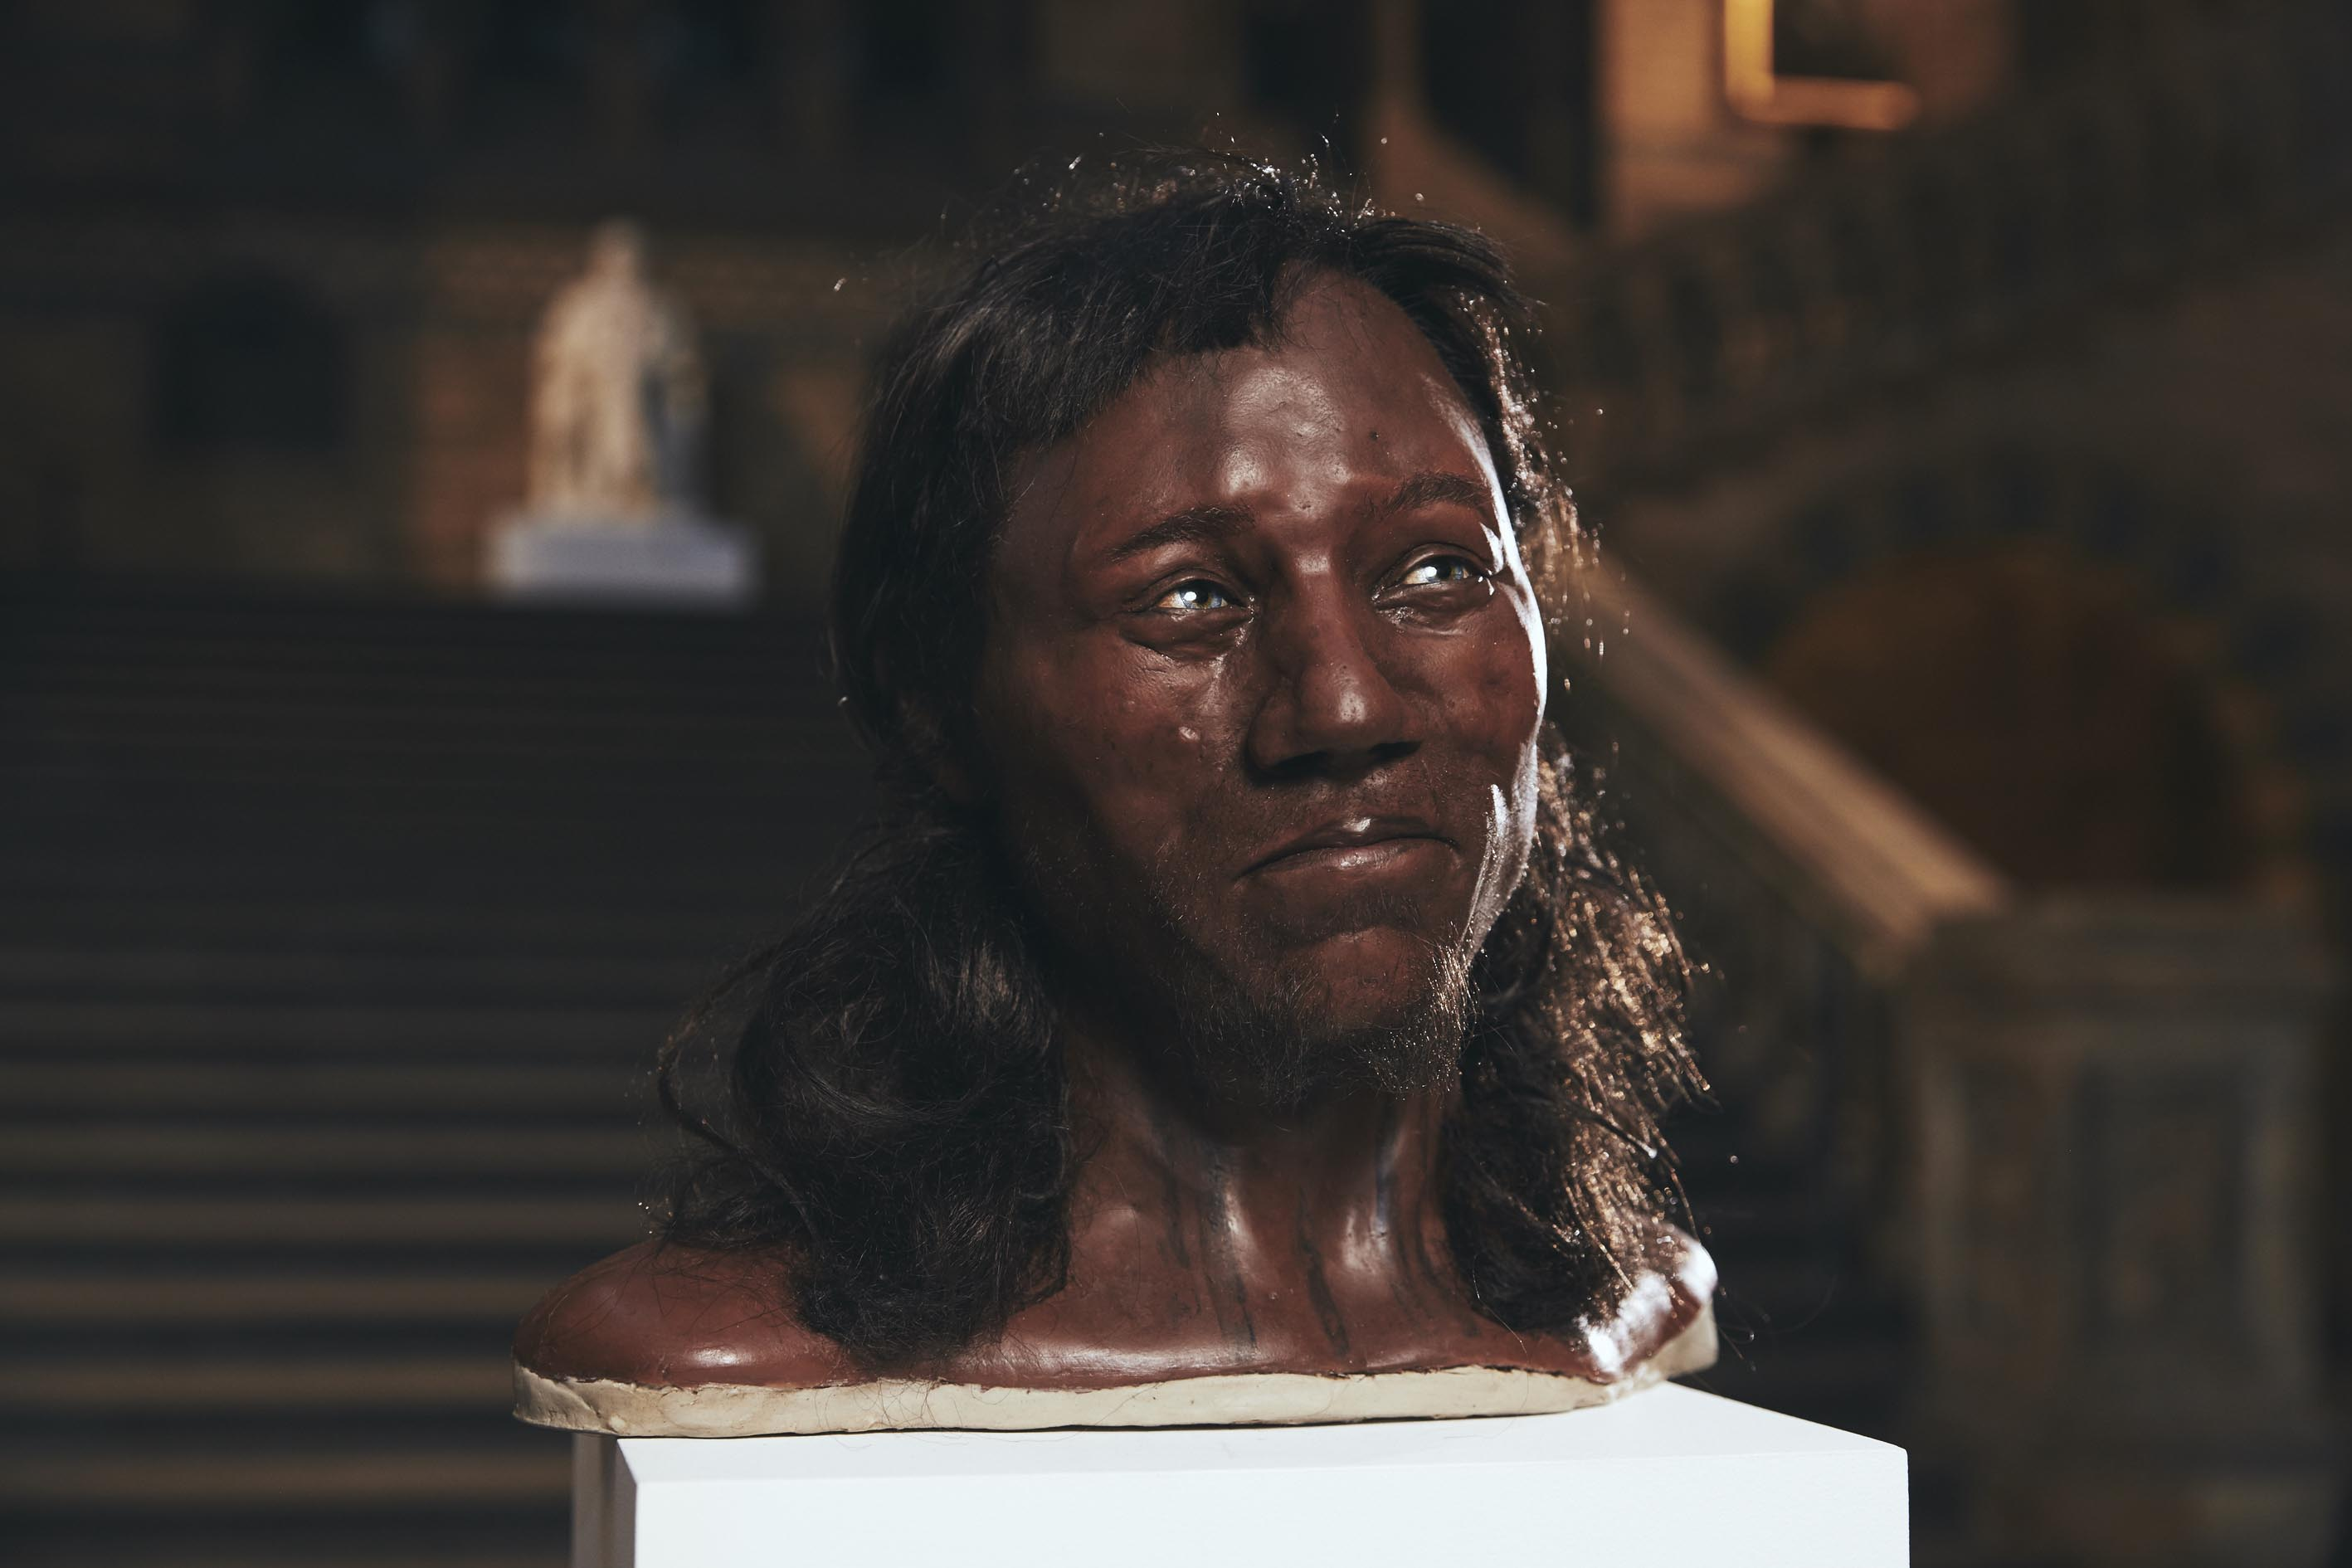 Twitter reacts to Cheddar Man's darkish pores and skin and blue eyes